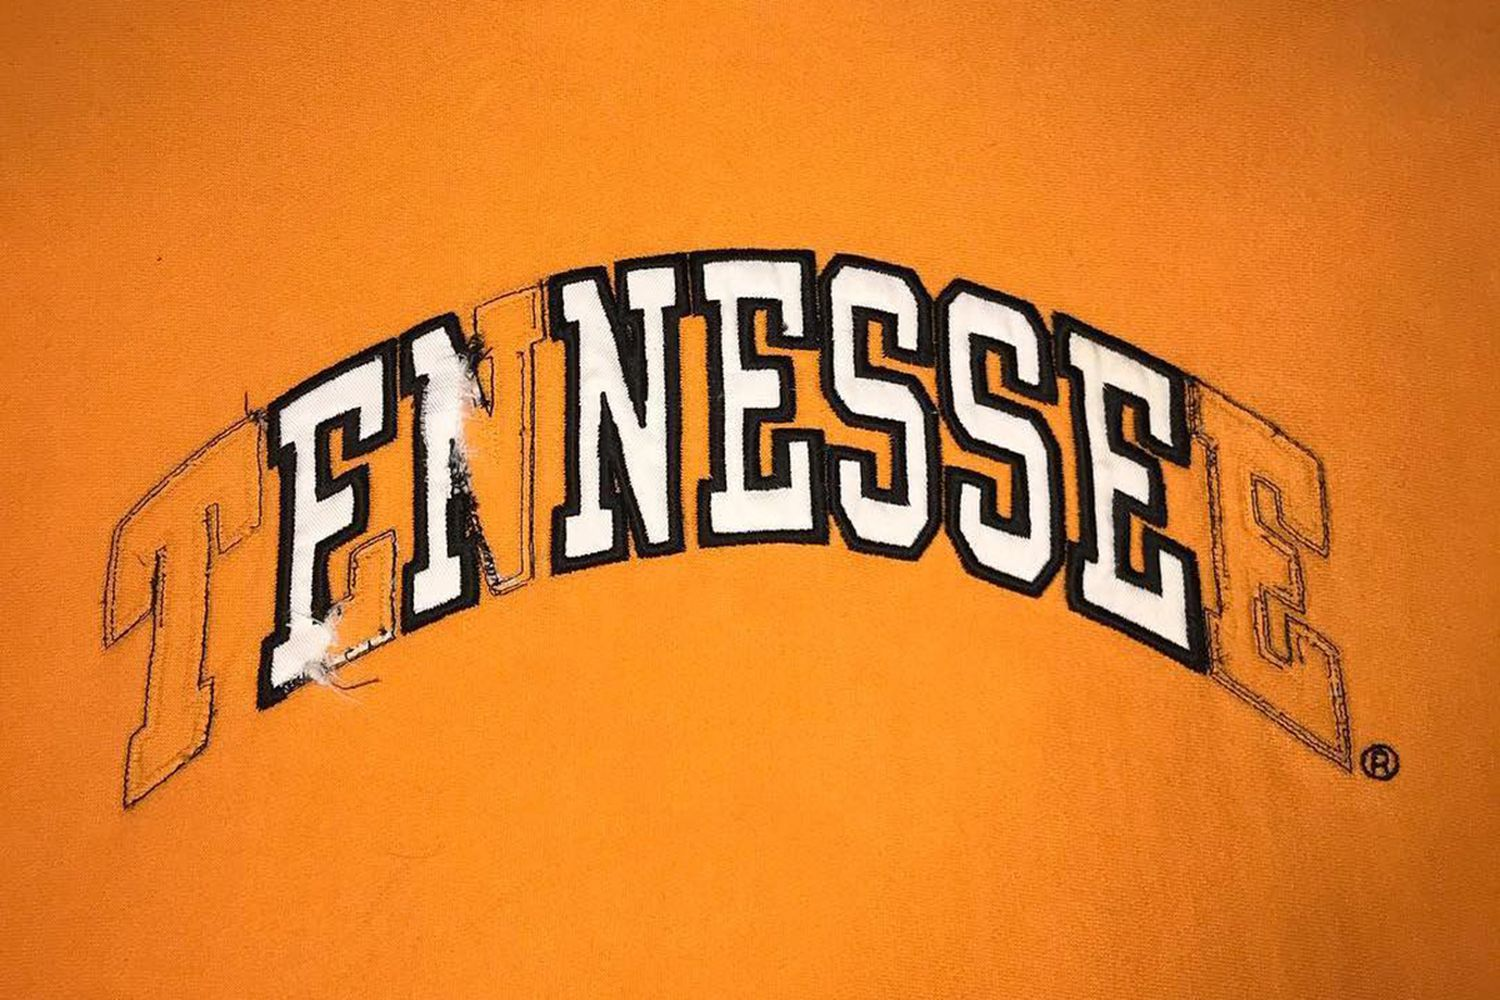 Finesse College RE sweatshirt